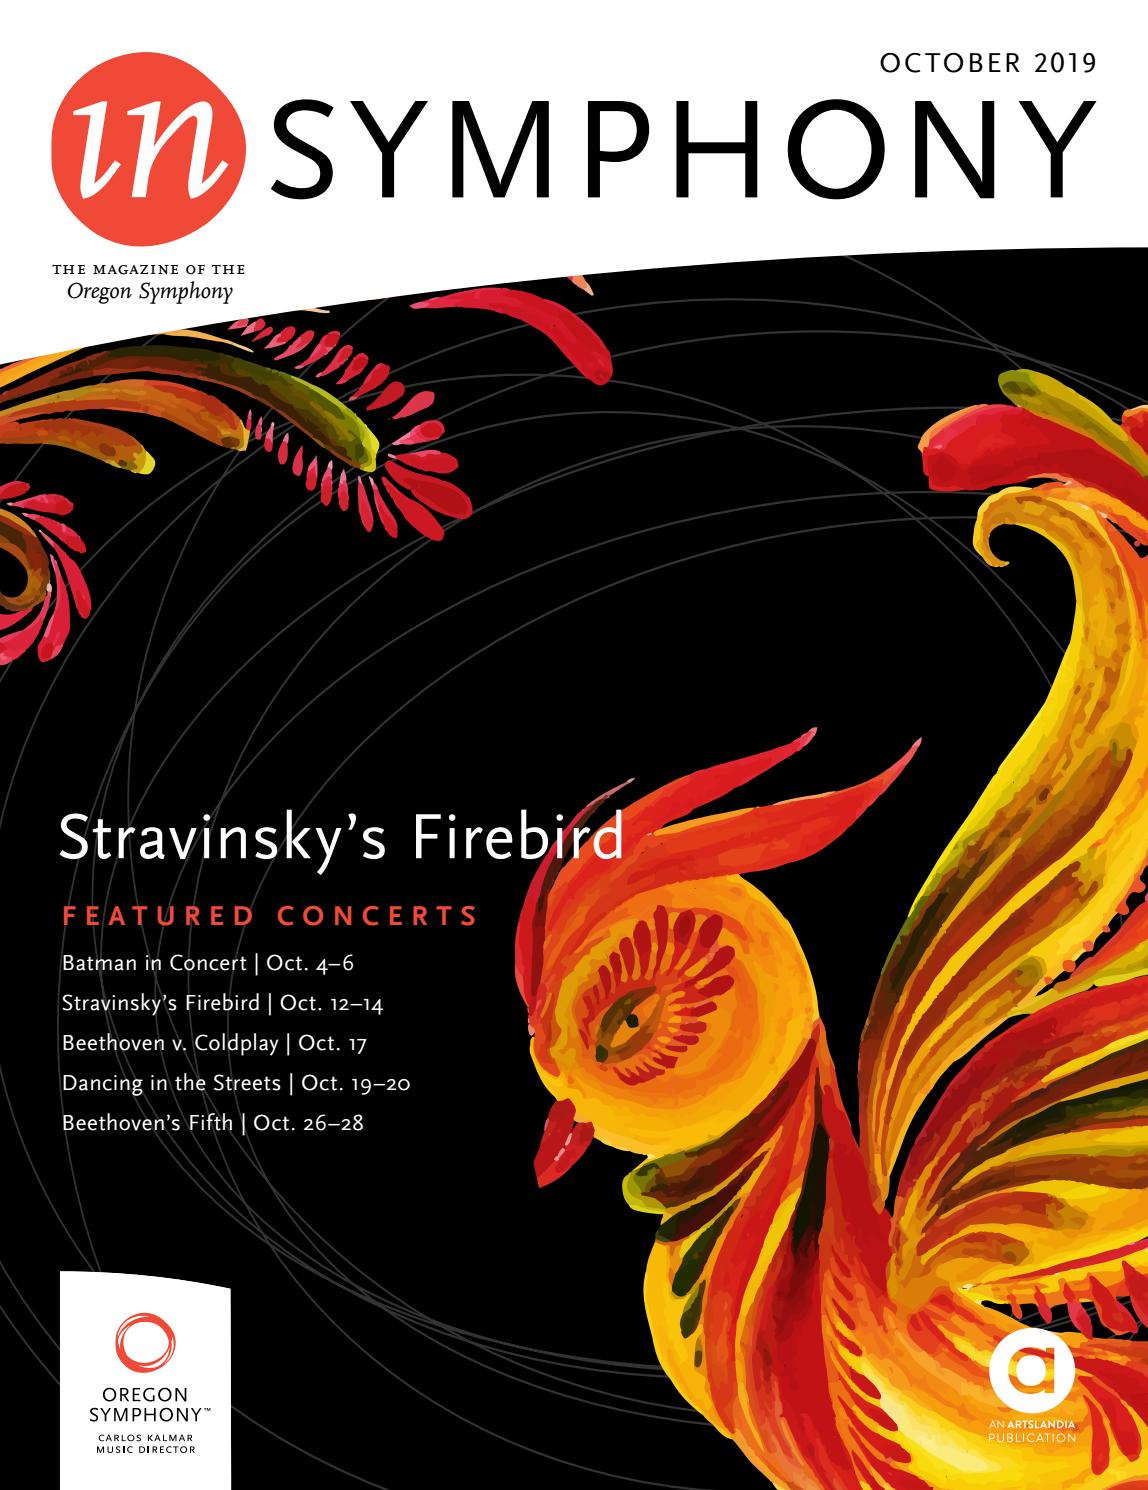 Insymphony October 2019 By Artslandia Issuu The buzz on maggie on wn network delivers the latest videos and editable pages for news & events, including entertainment, music, sports, science and more, sign up and share your playlists. insymphony october 2019 by artslandia